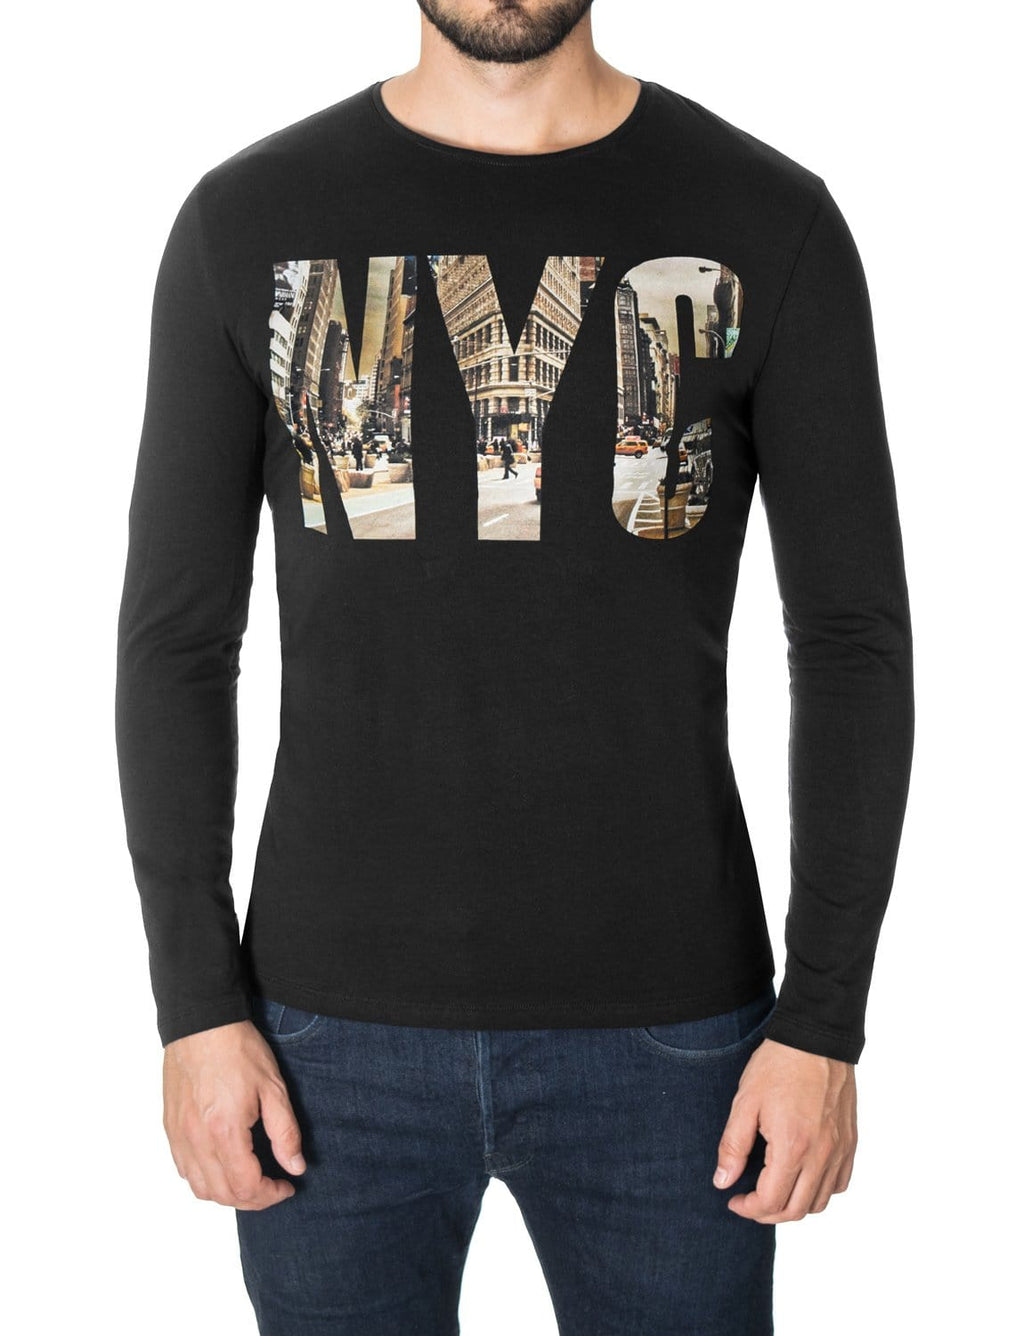 new york nyc long sleeve t shirt for men